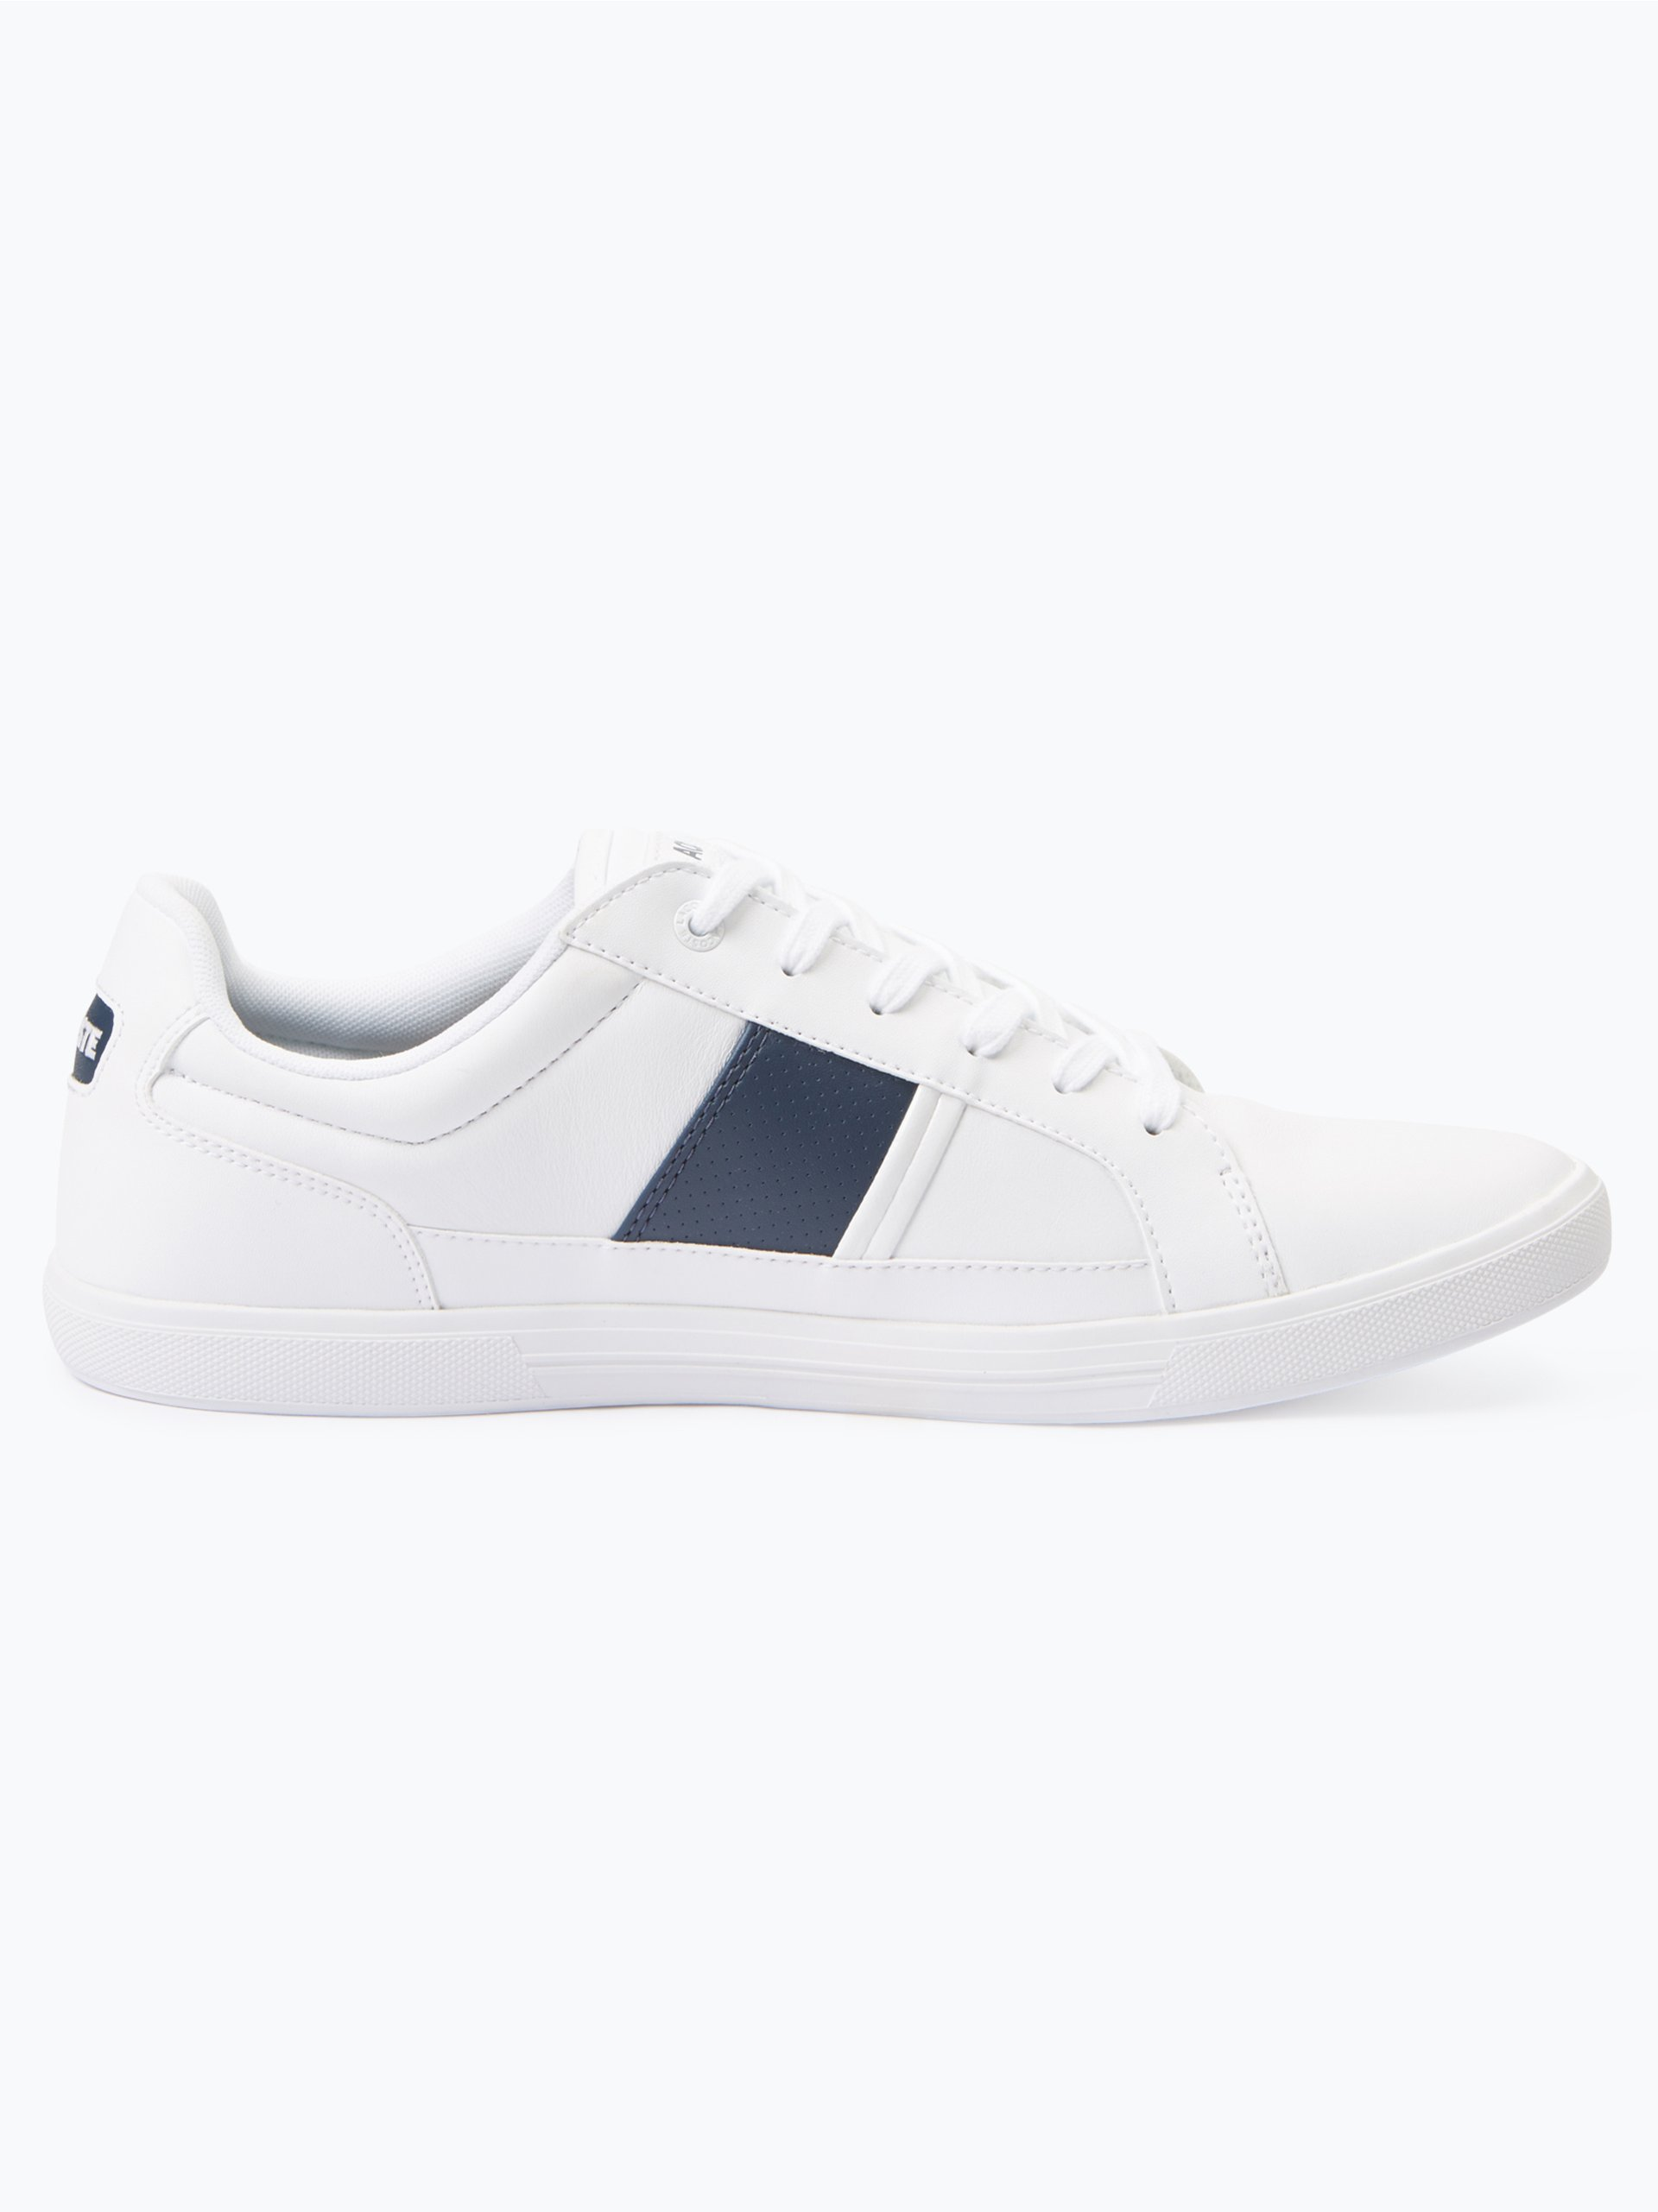 lacoste herren sneaker mit leder anteil wei uni online. Black Bedroom Furniture Sets. Home Design Ideas